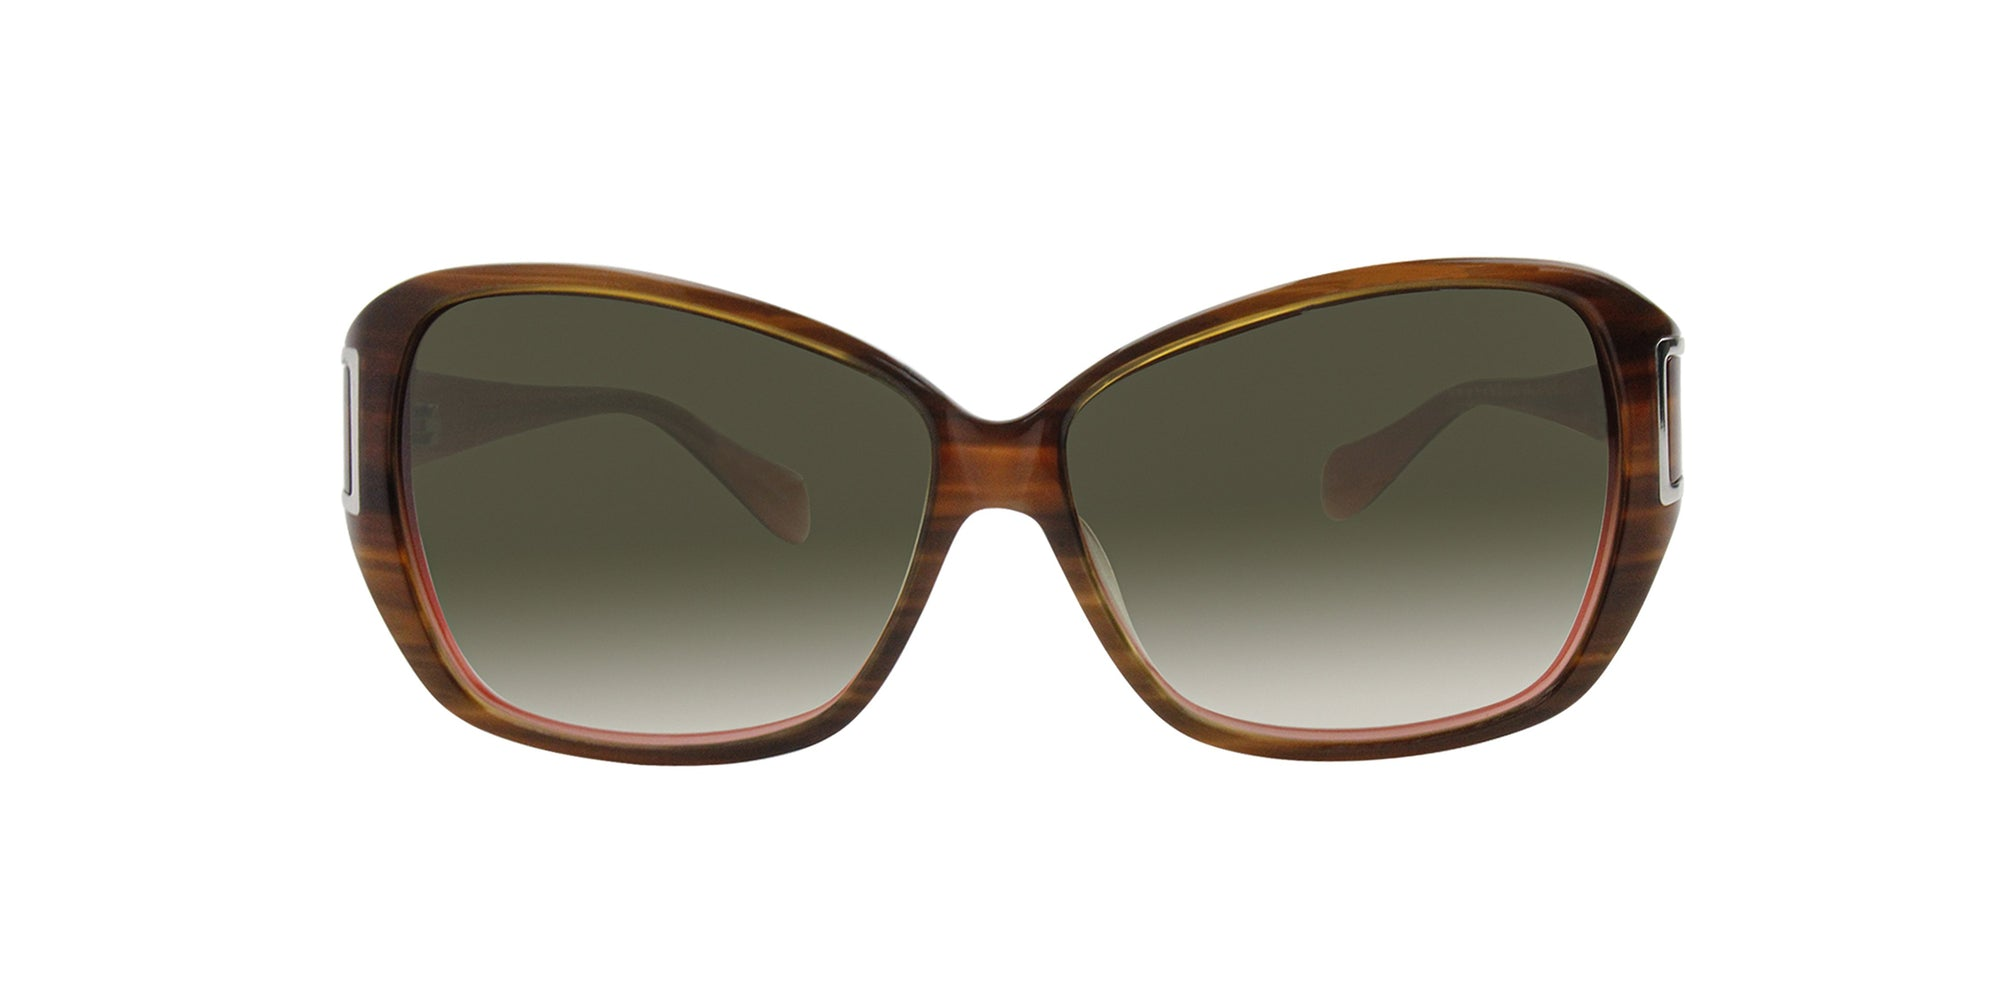 Oliver Peoples - ILSA Brown Butterfly Women Sunglasses - 60mm-Sunglasses-Designer Eyes